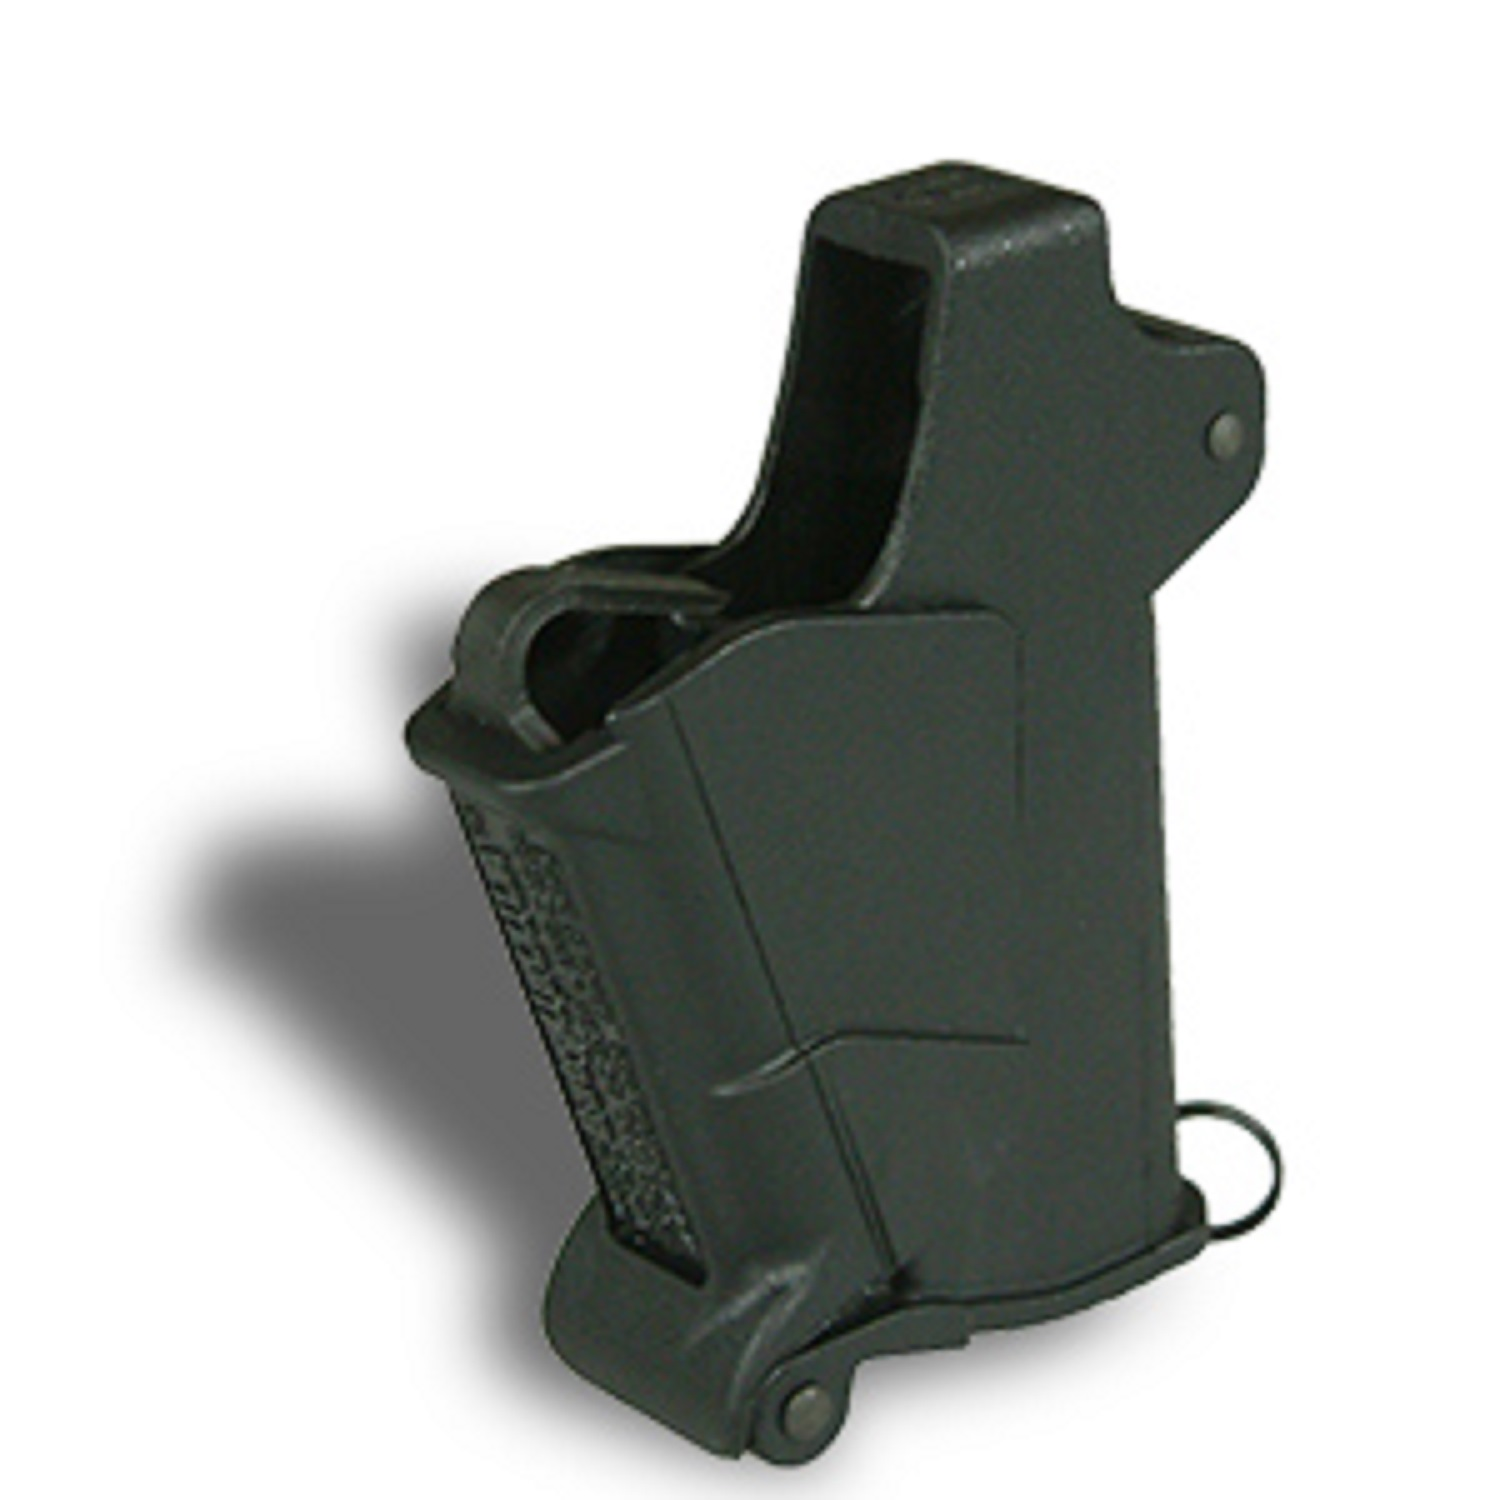 Baby UpLULA Loader .22 LR - .380 ACP 24223 - LULA UP64B